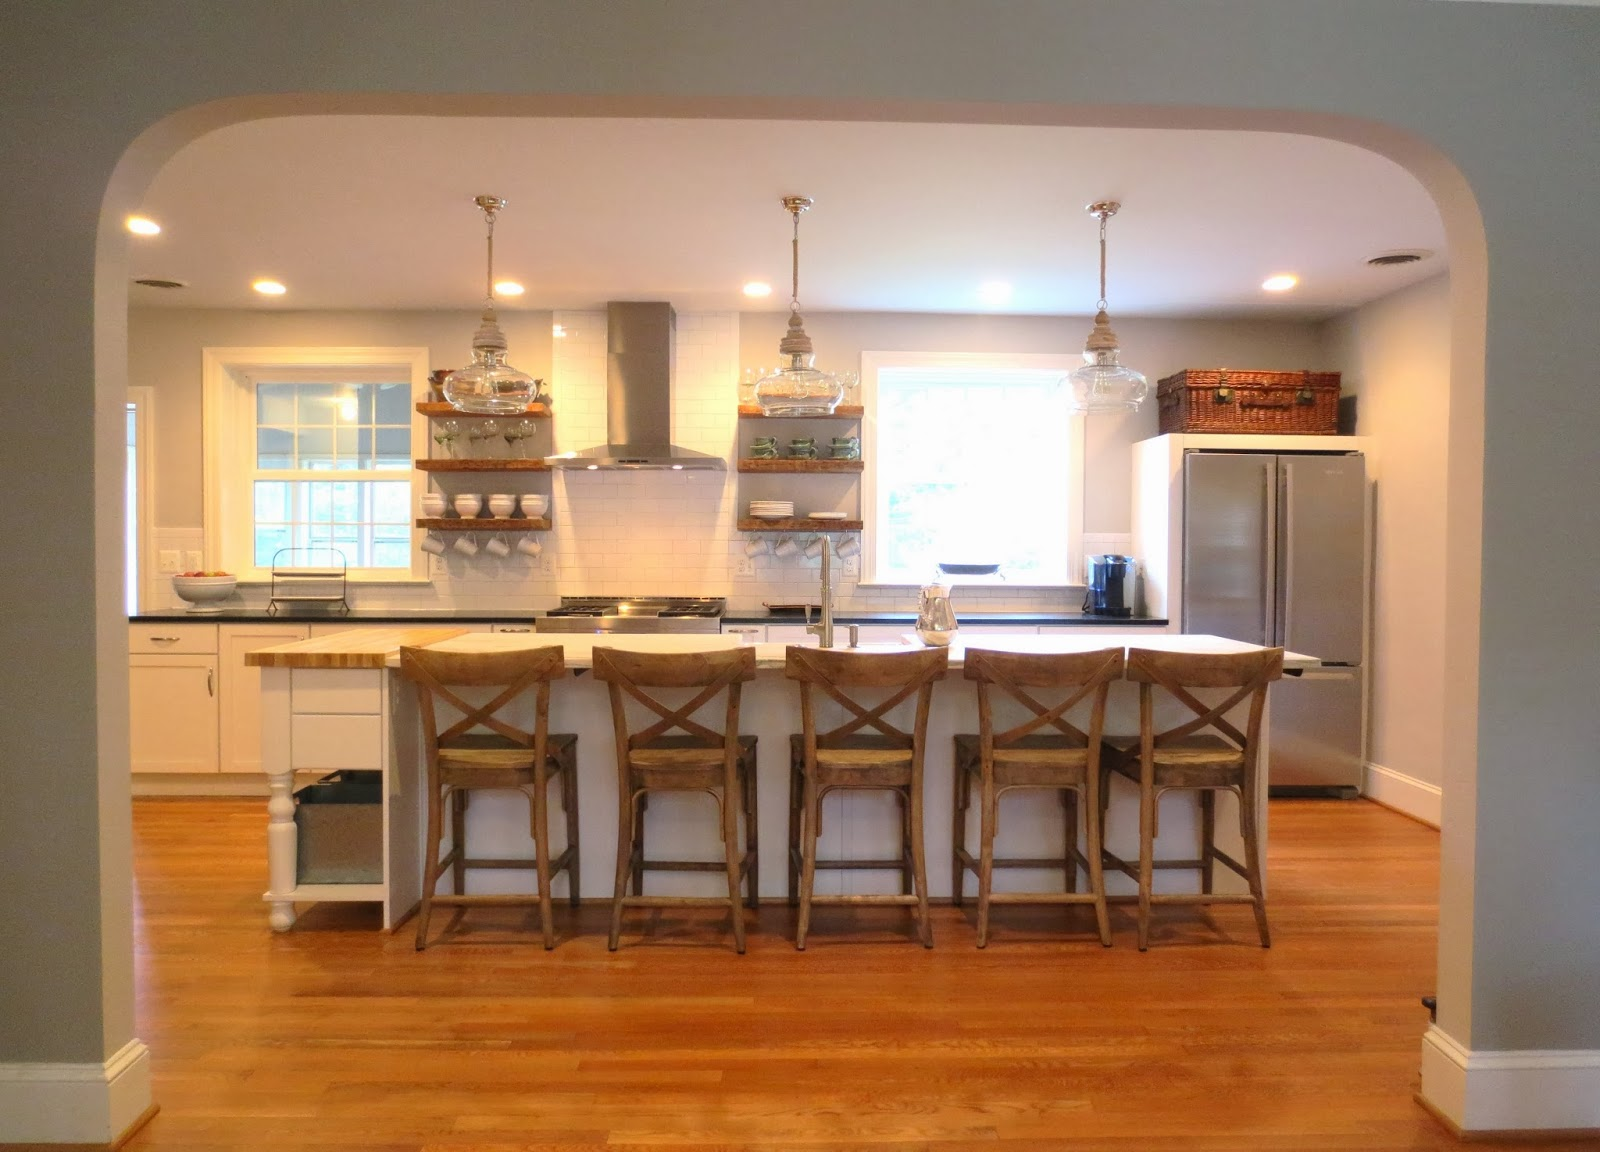 row house refuge timeless kitchen design part 1 timeless kitchen design by salvarini